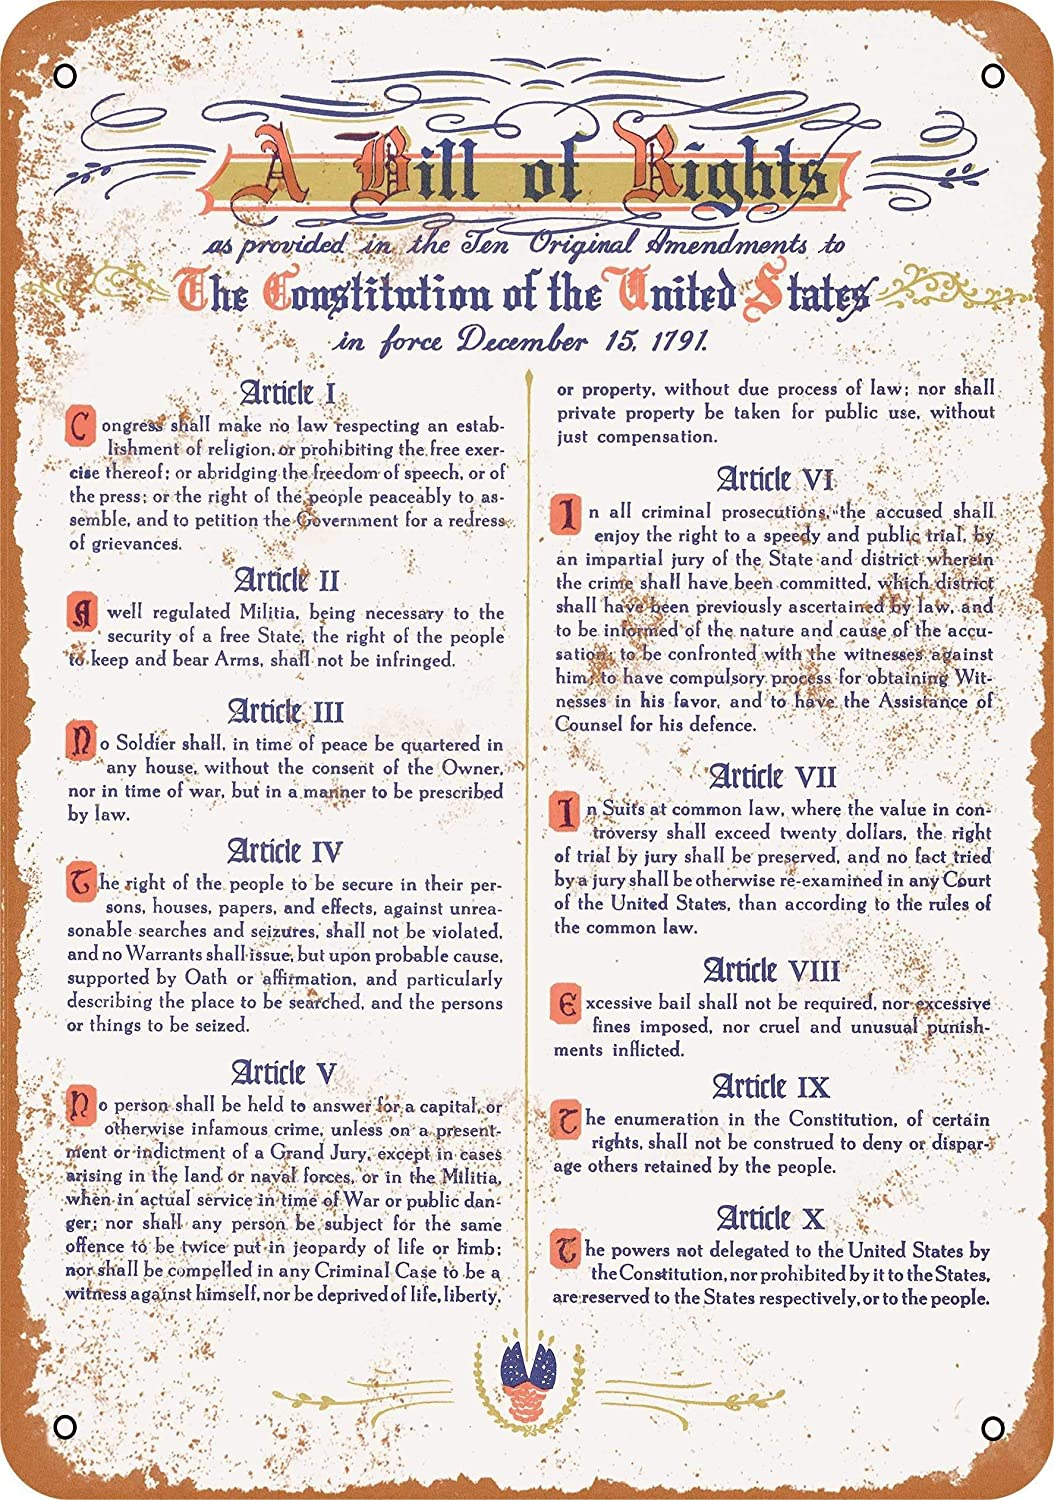 2 Pcs 10 x 14 in Metal Sign - 1791 United States Bill of Rights - Vintage Look